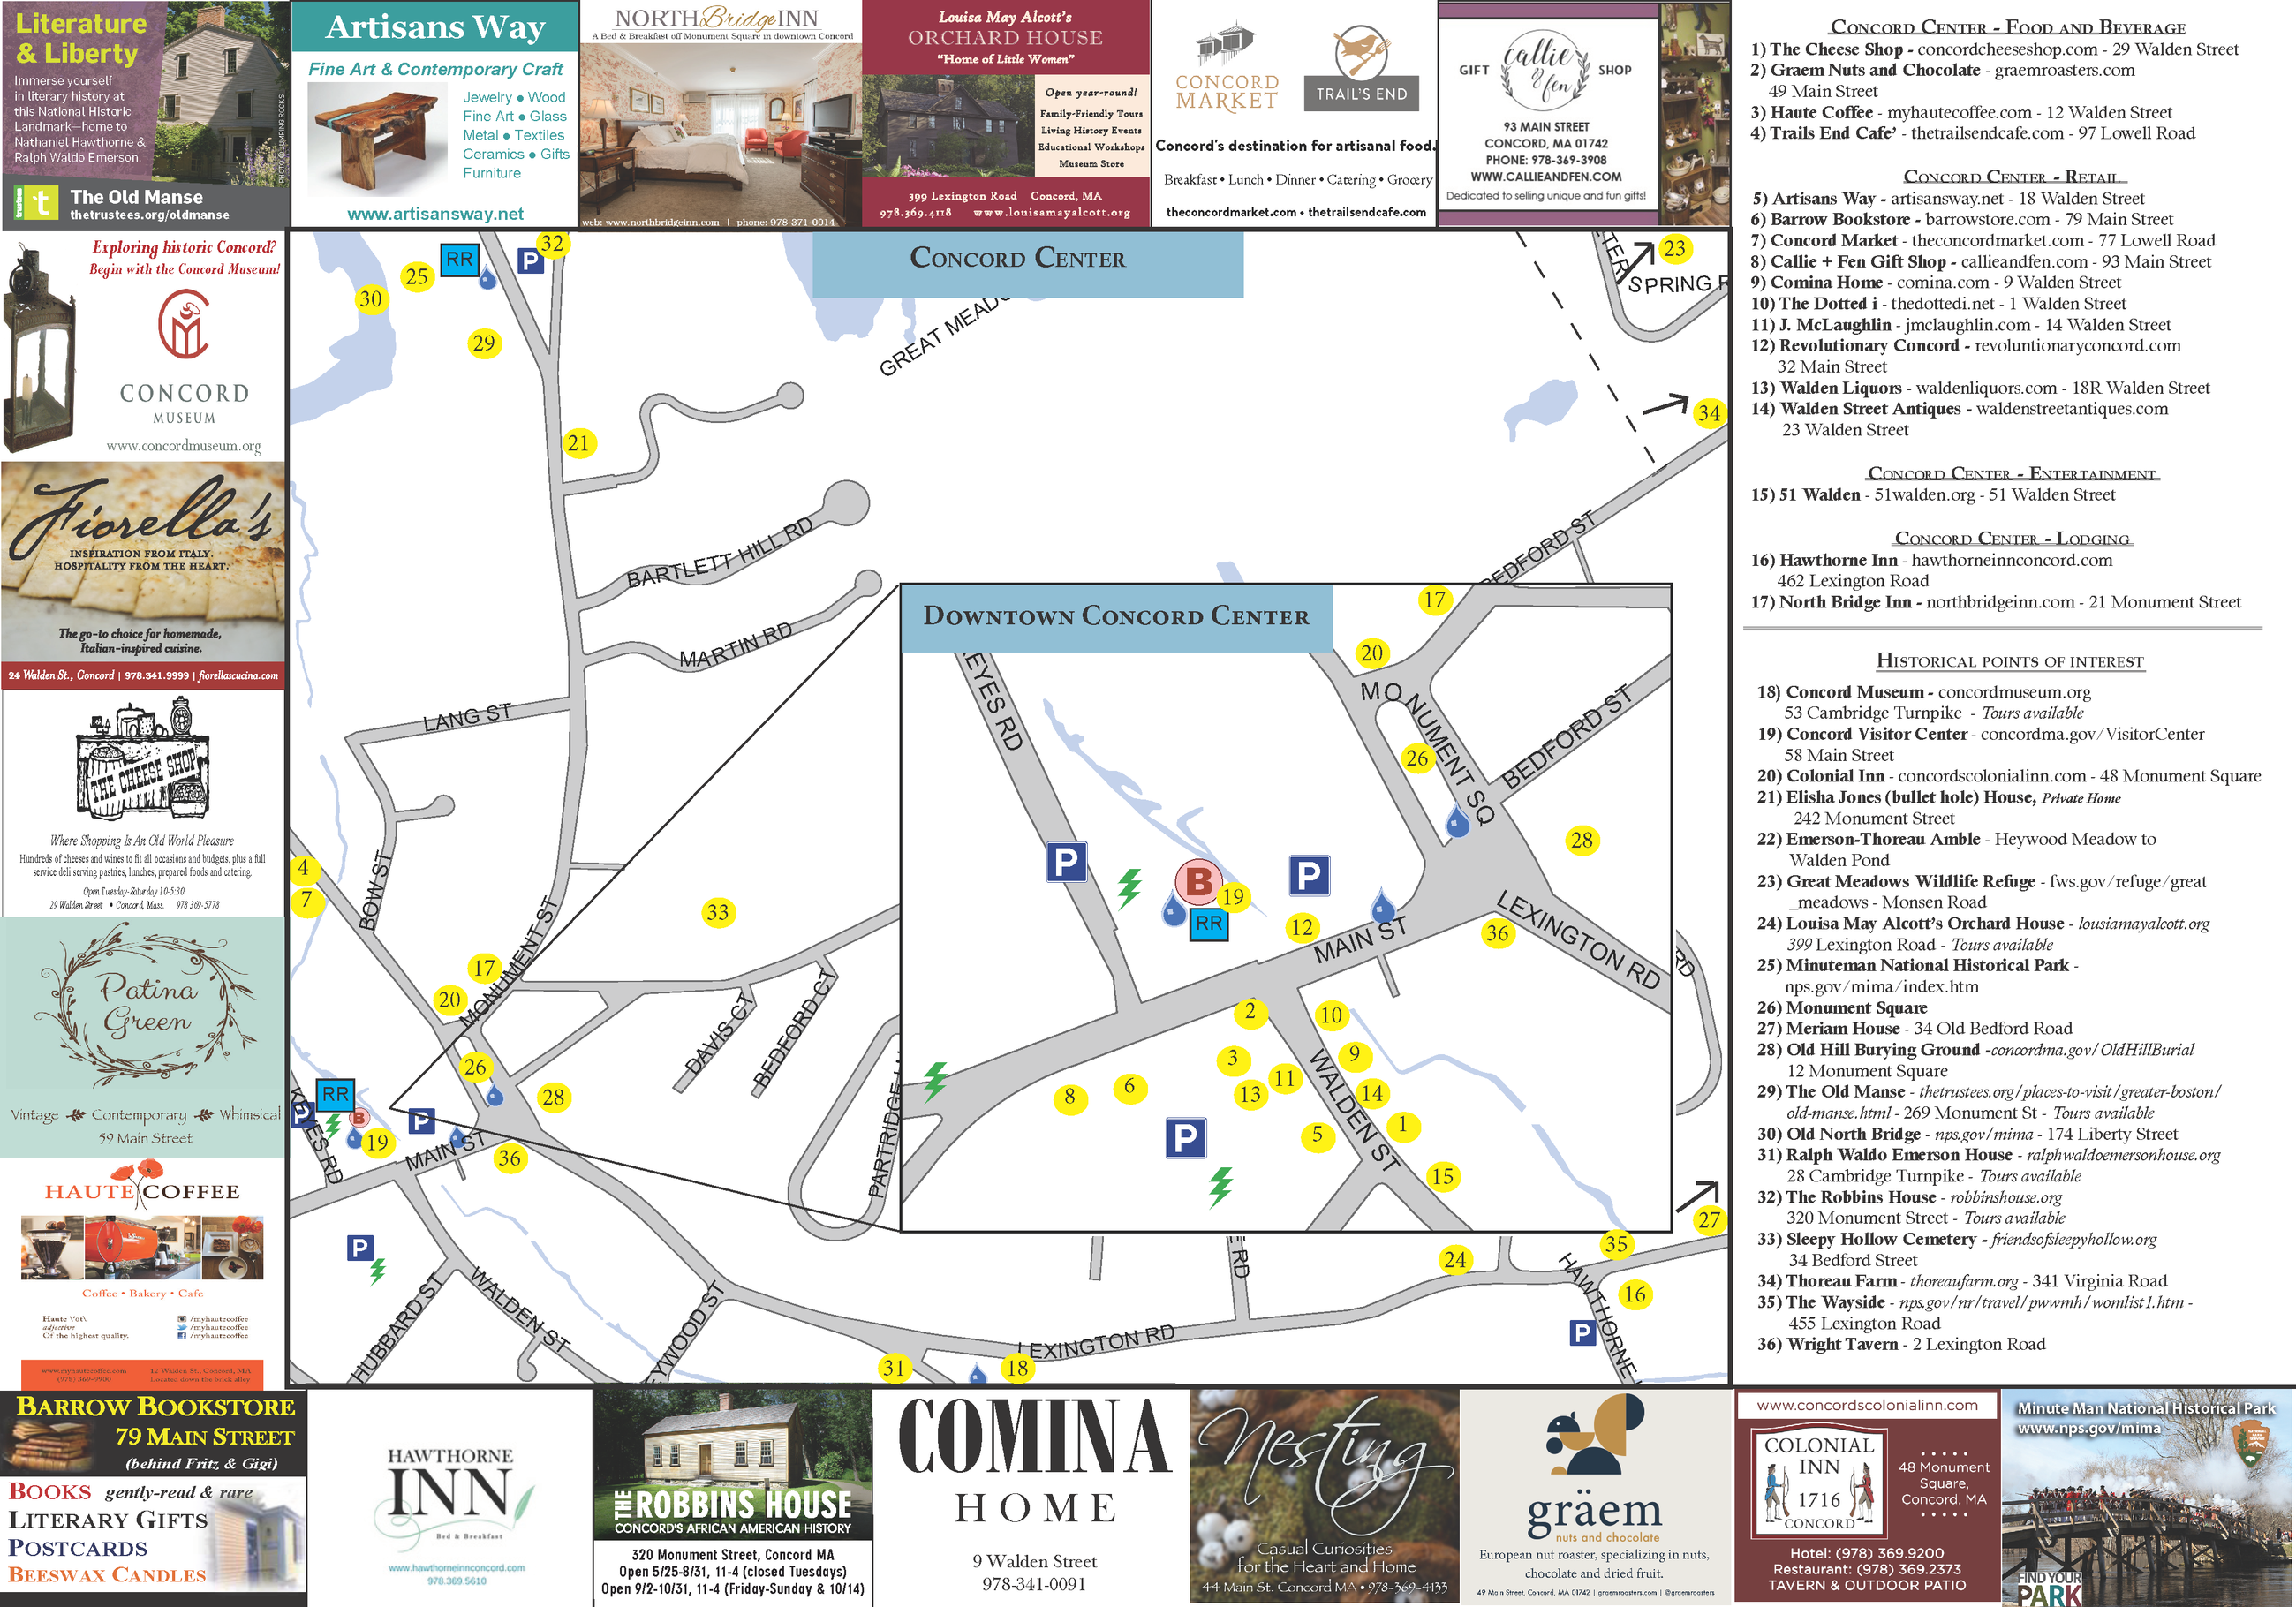 Visitor Center Town Map | Concord, MA on ma city map, ma beaches map, norfolk county ma map, wellfleet ma map, mass city map, massachusetts county map, ma state map, billerica ma map, ma topographical map, ma toll map, ma river map, ma road map, ma region map, ma coast map, ma island map, eastern ma cities map, ma world map, massachusetts zip code map, ma on us map, ma counties map,